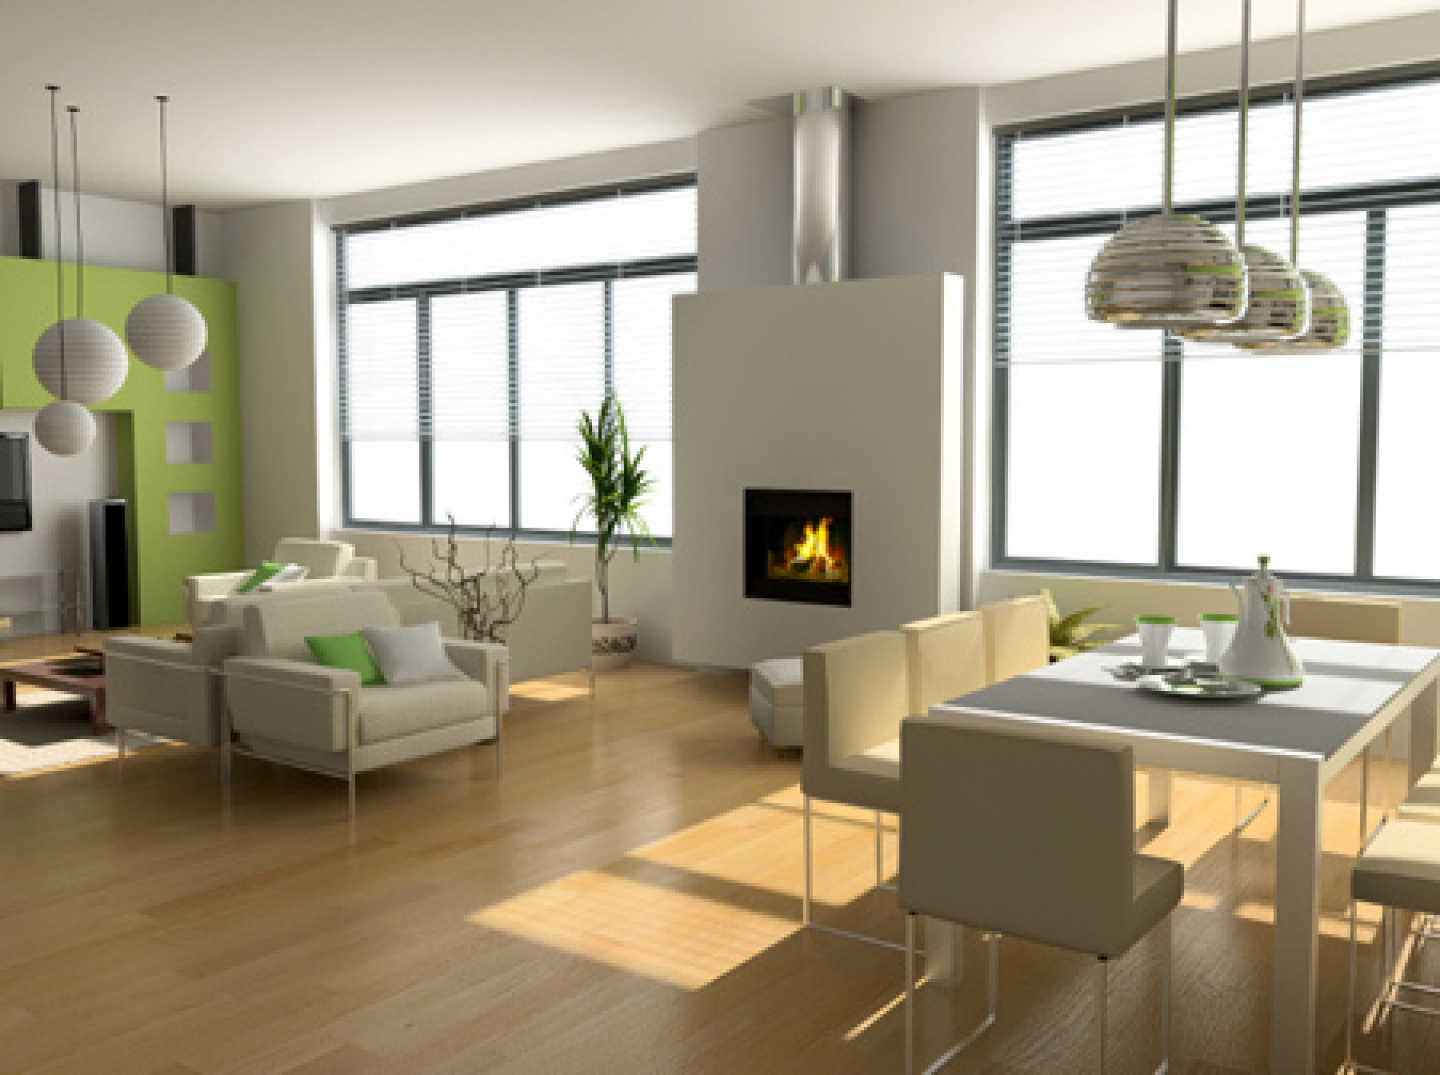 25 modern living room decor ideas Modern apartment interior design